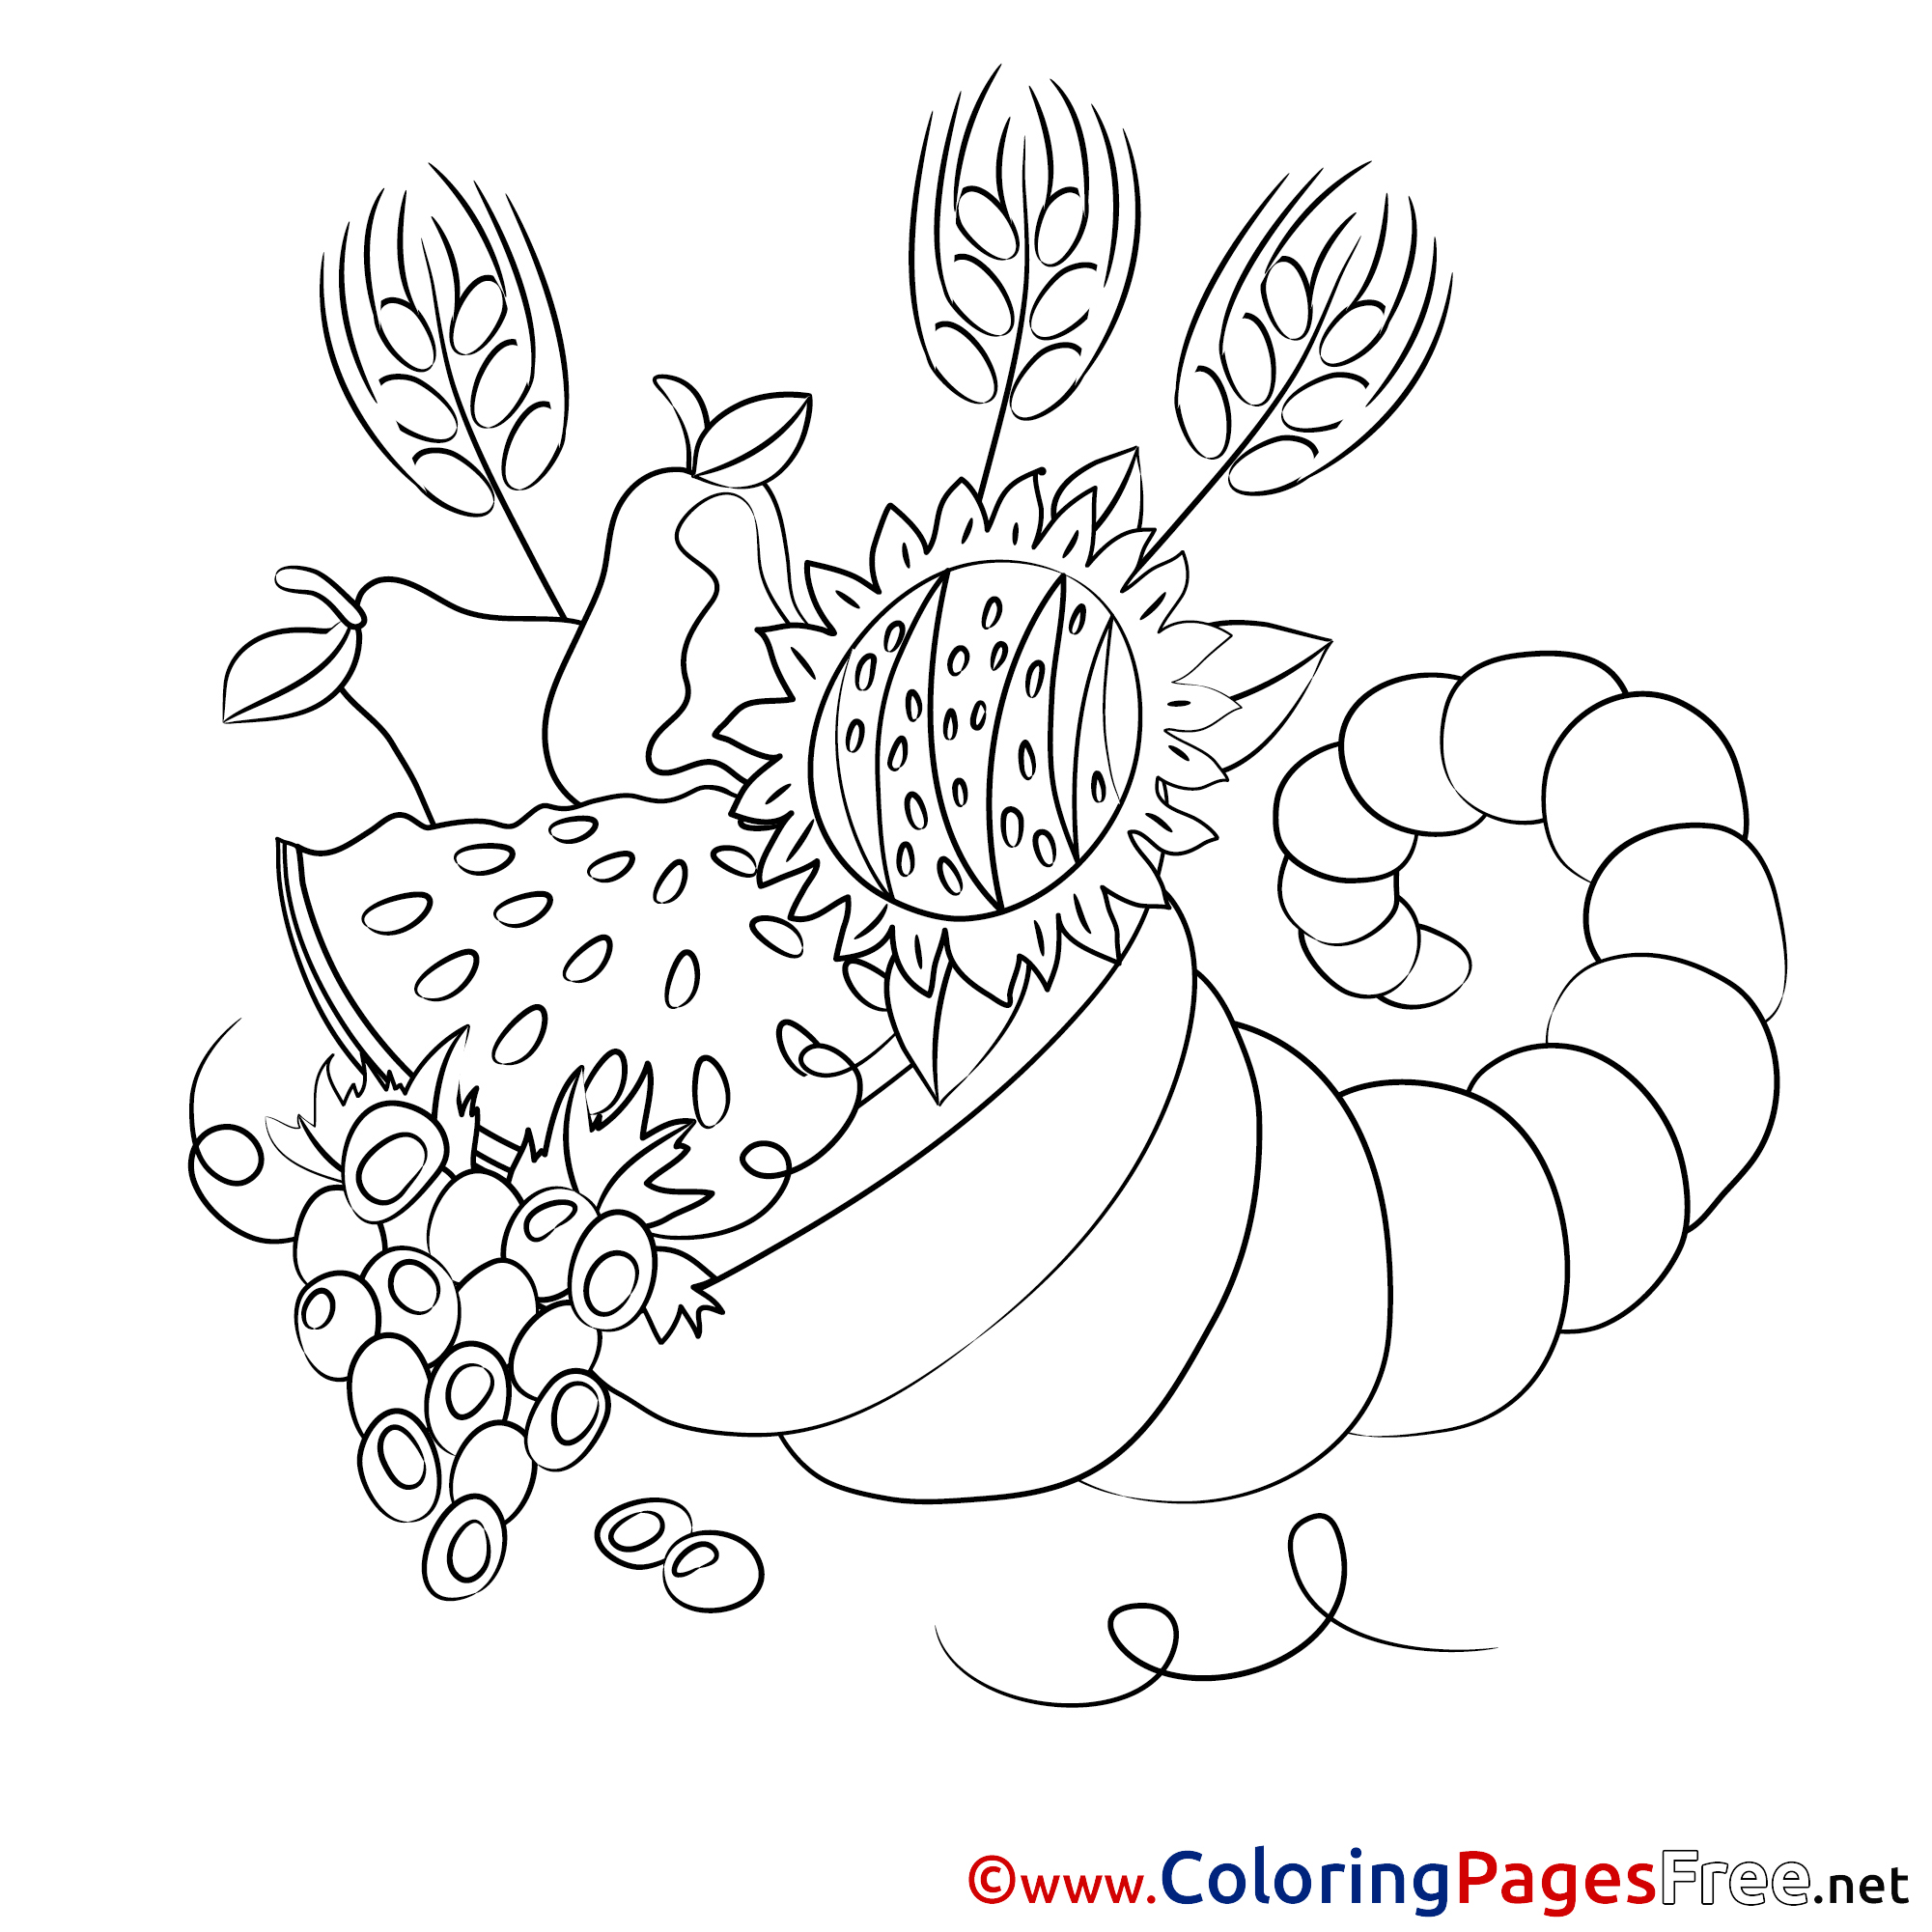 Harvest for Children free Coloring Pages